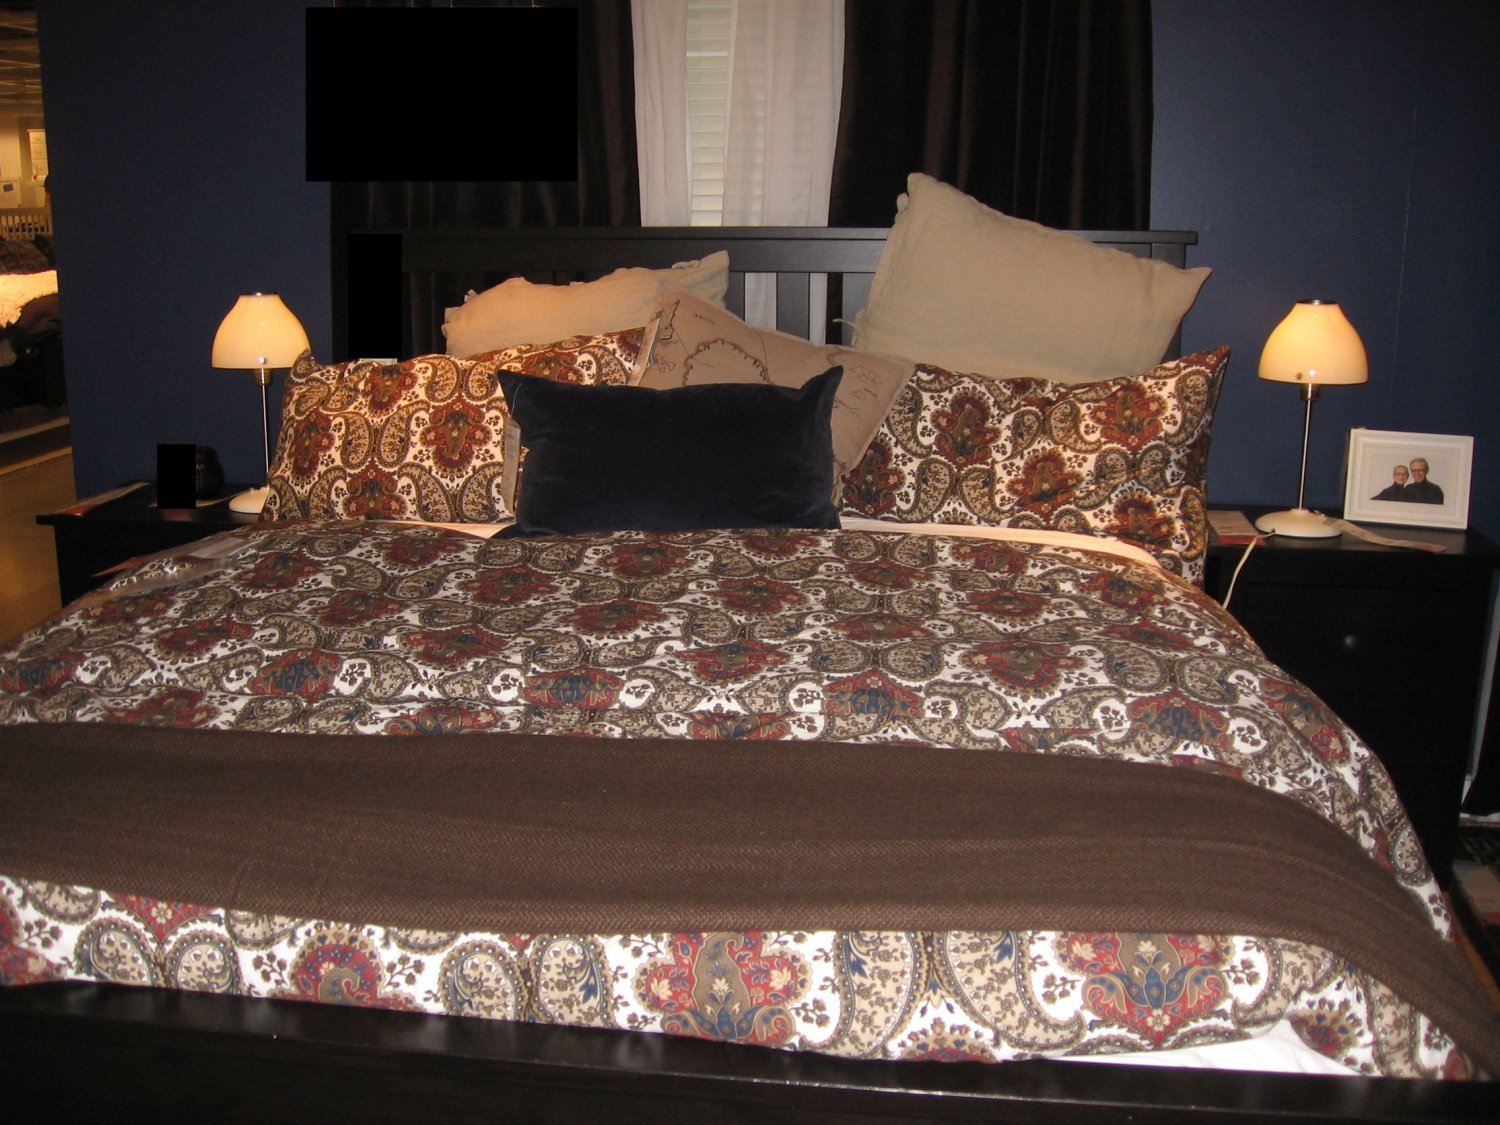 Ikea backs ta queen full paisley duvet cover pillowcase for Ikea bed covers sets queen